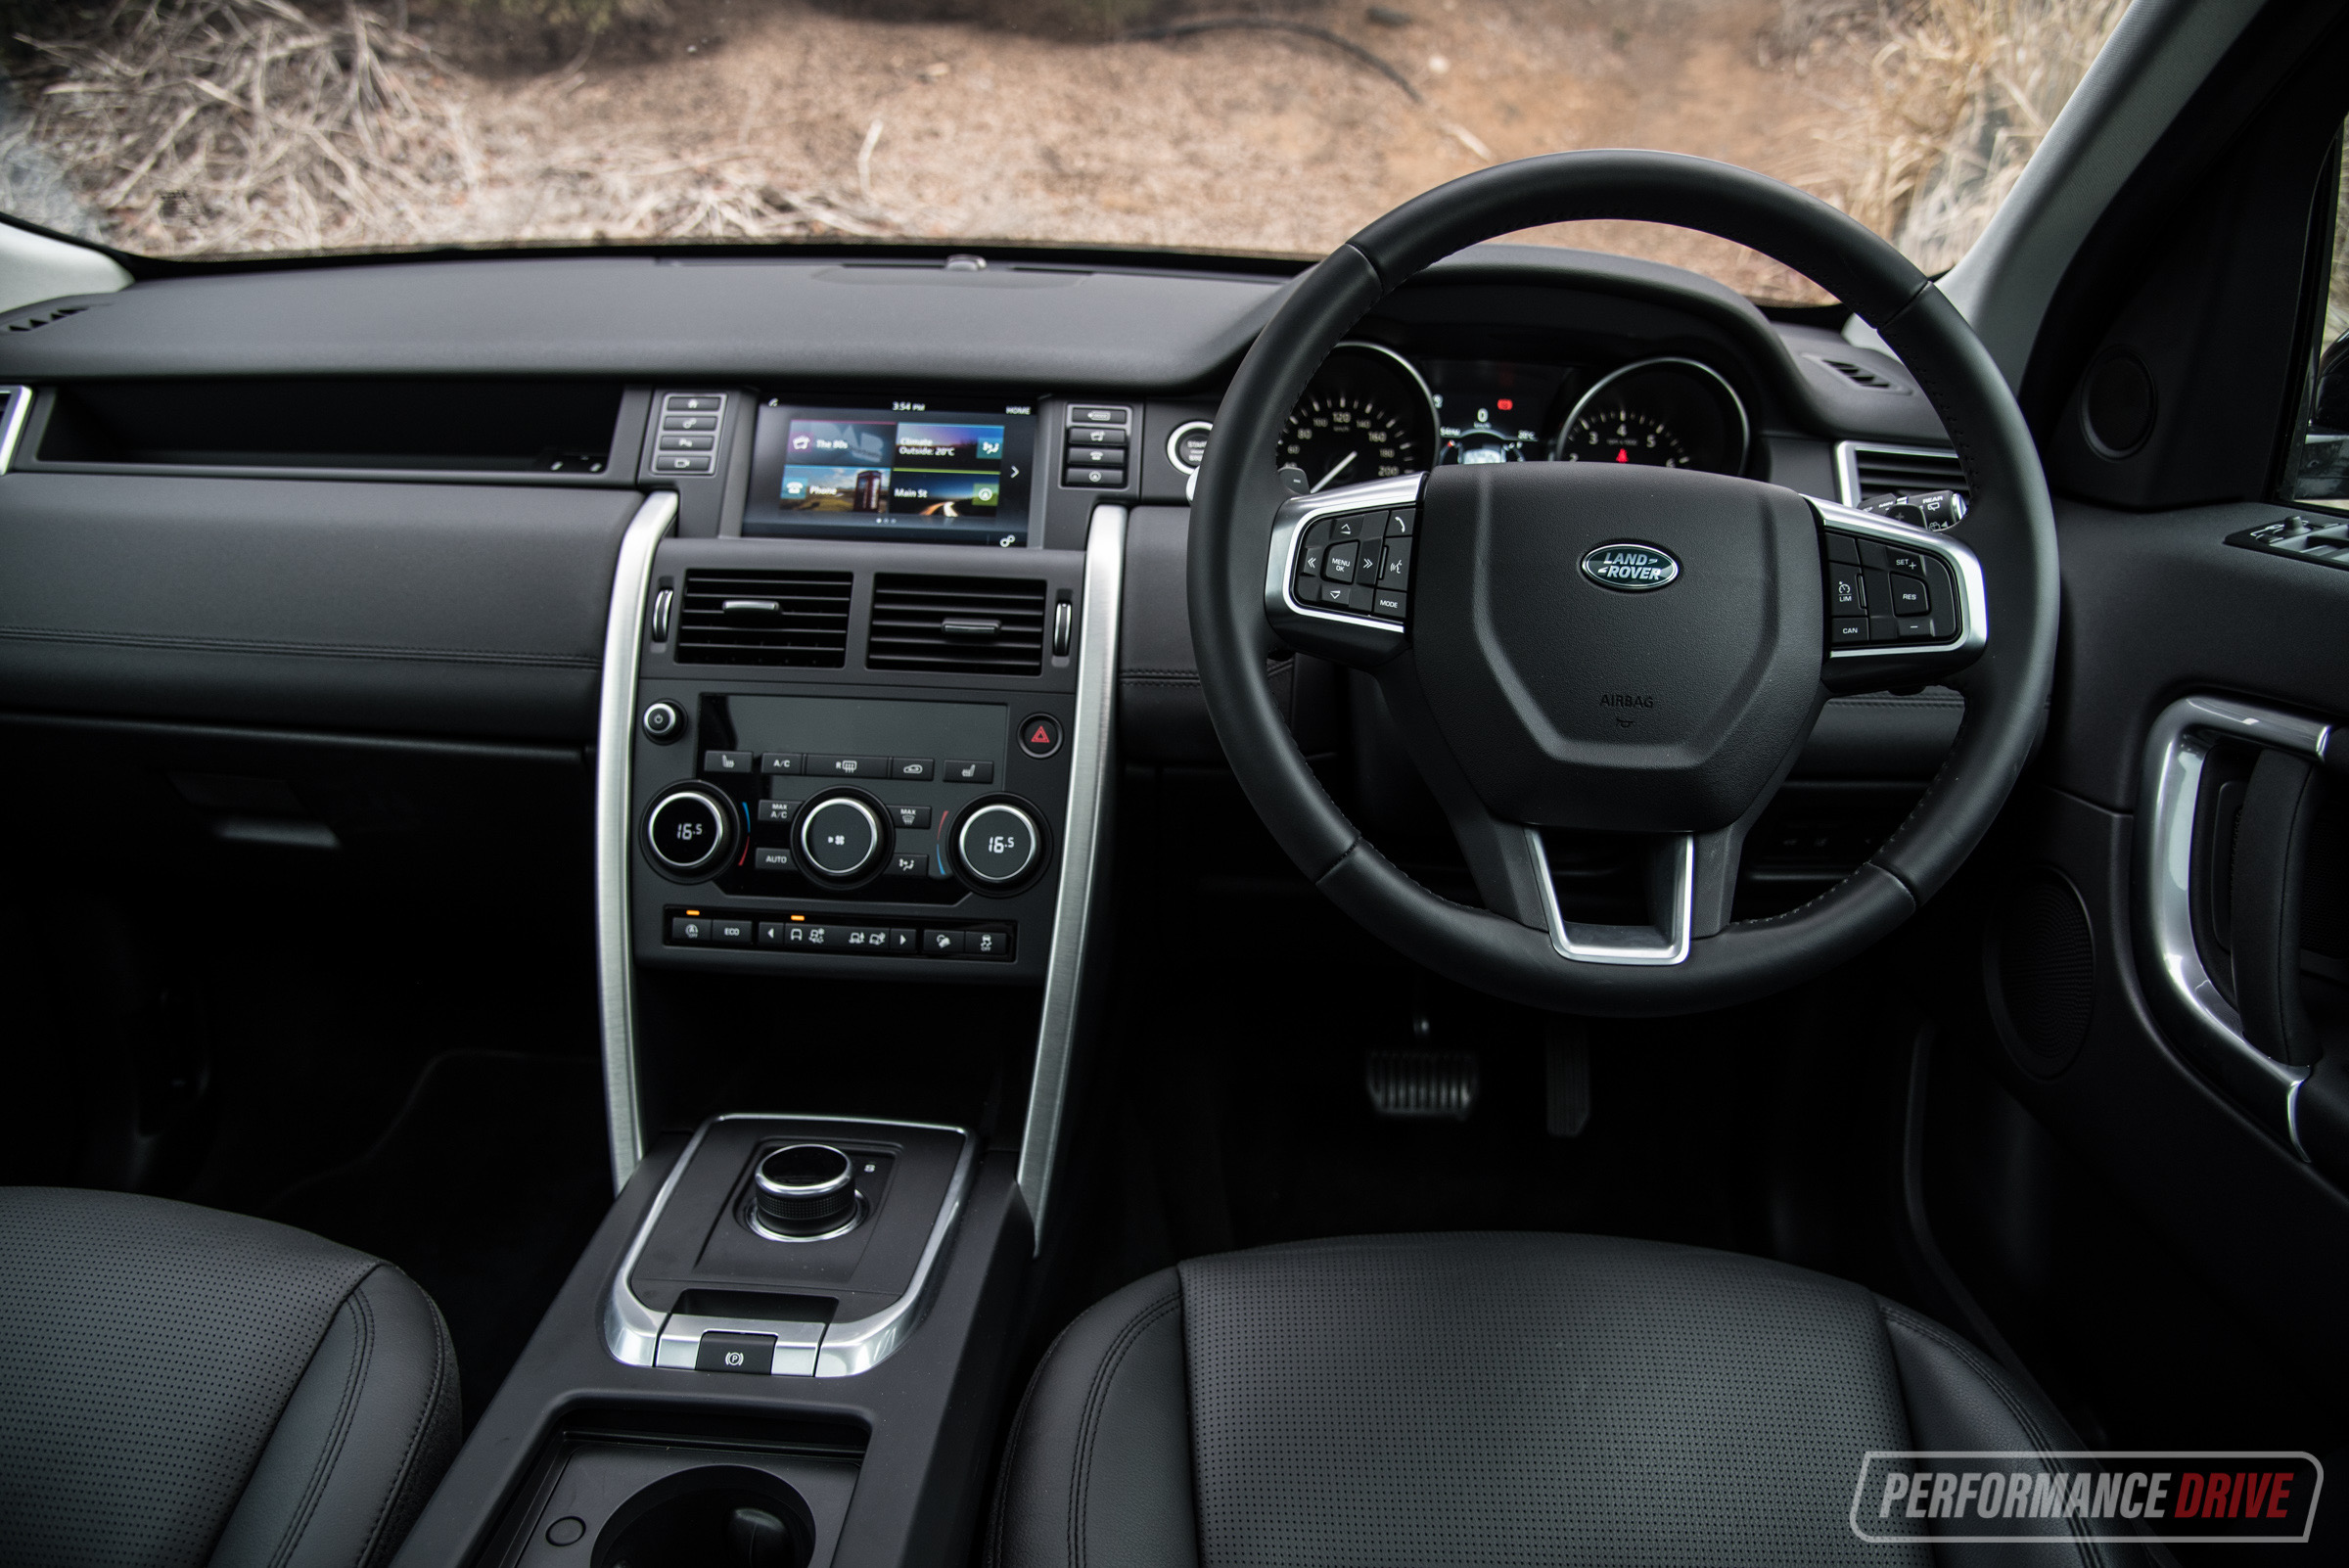 Range Rover Interior >> 2018 Land Rover Discovery Sport Si4 SE review (video) | PerformanceDrive